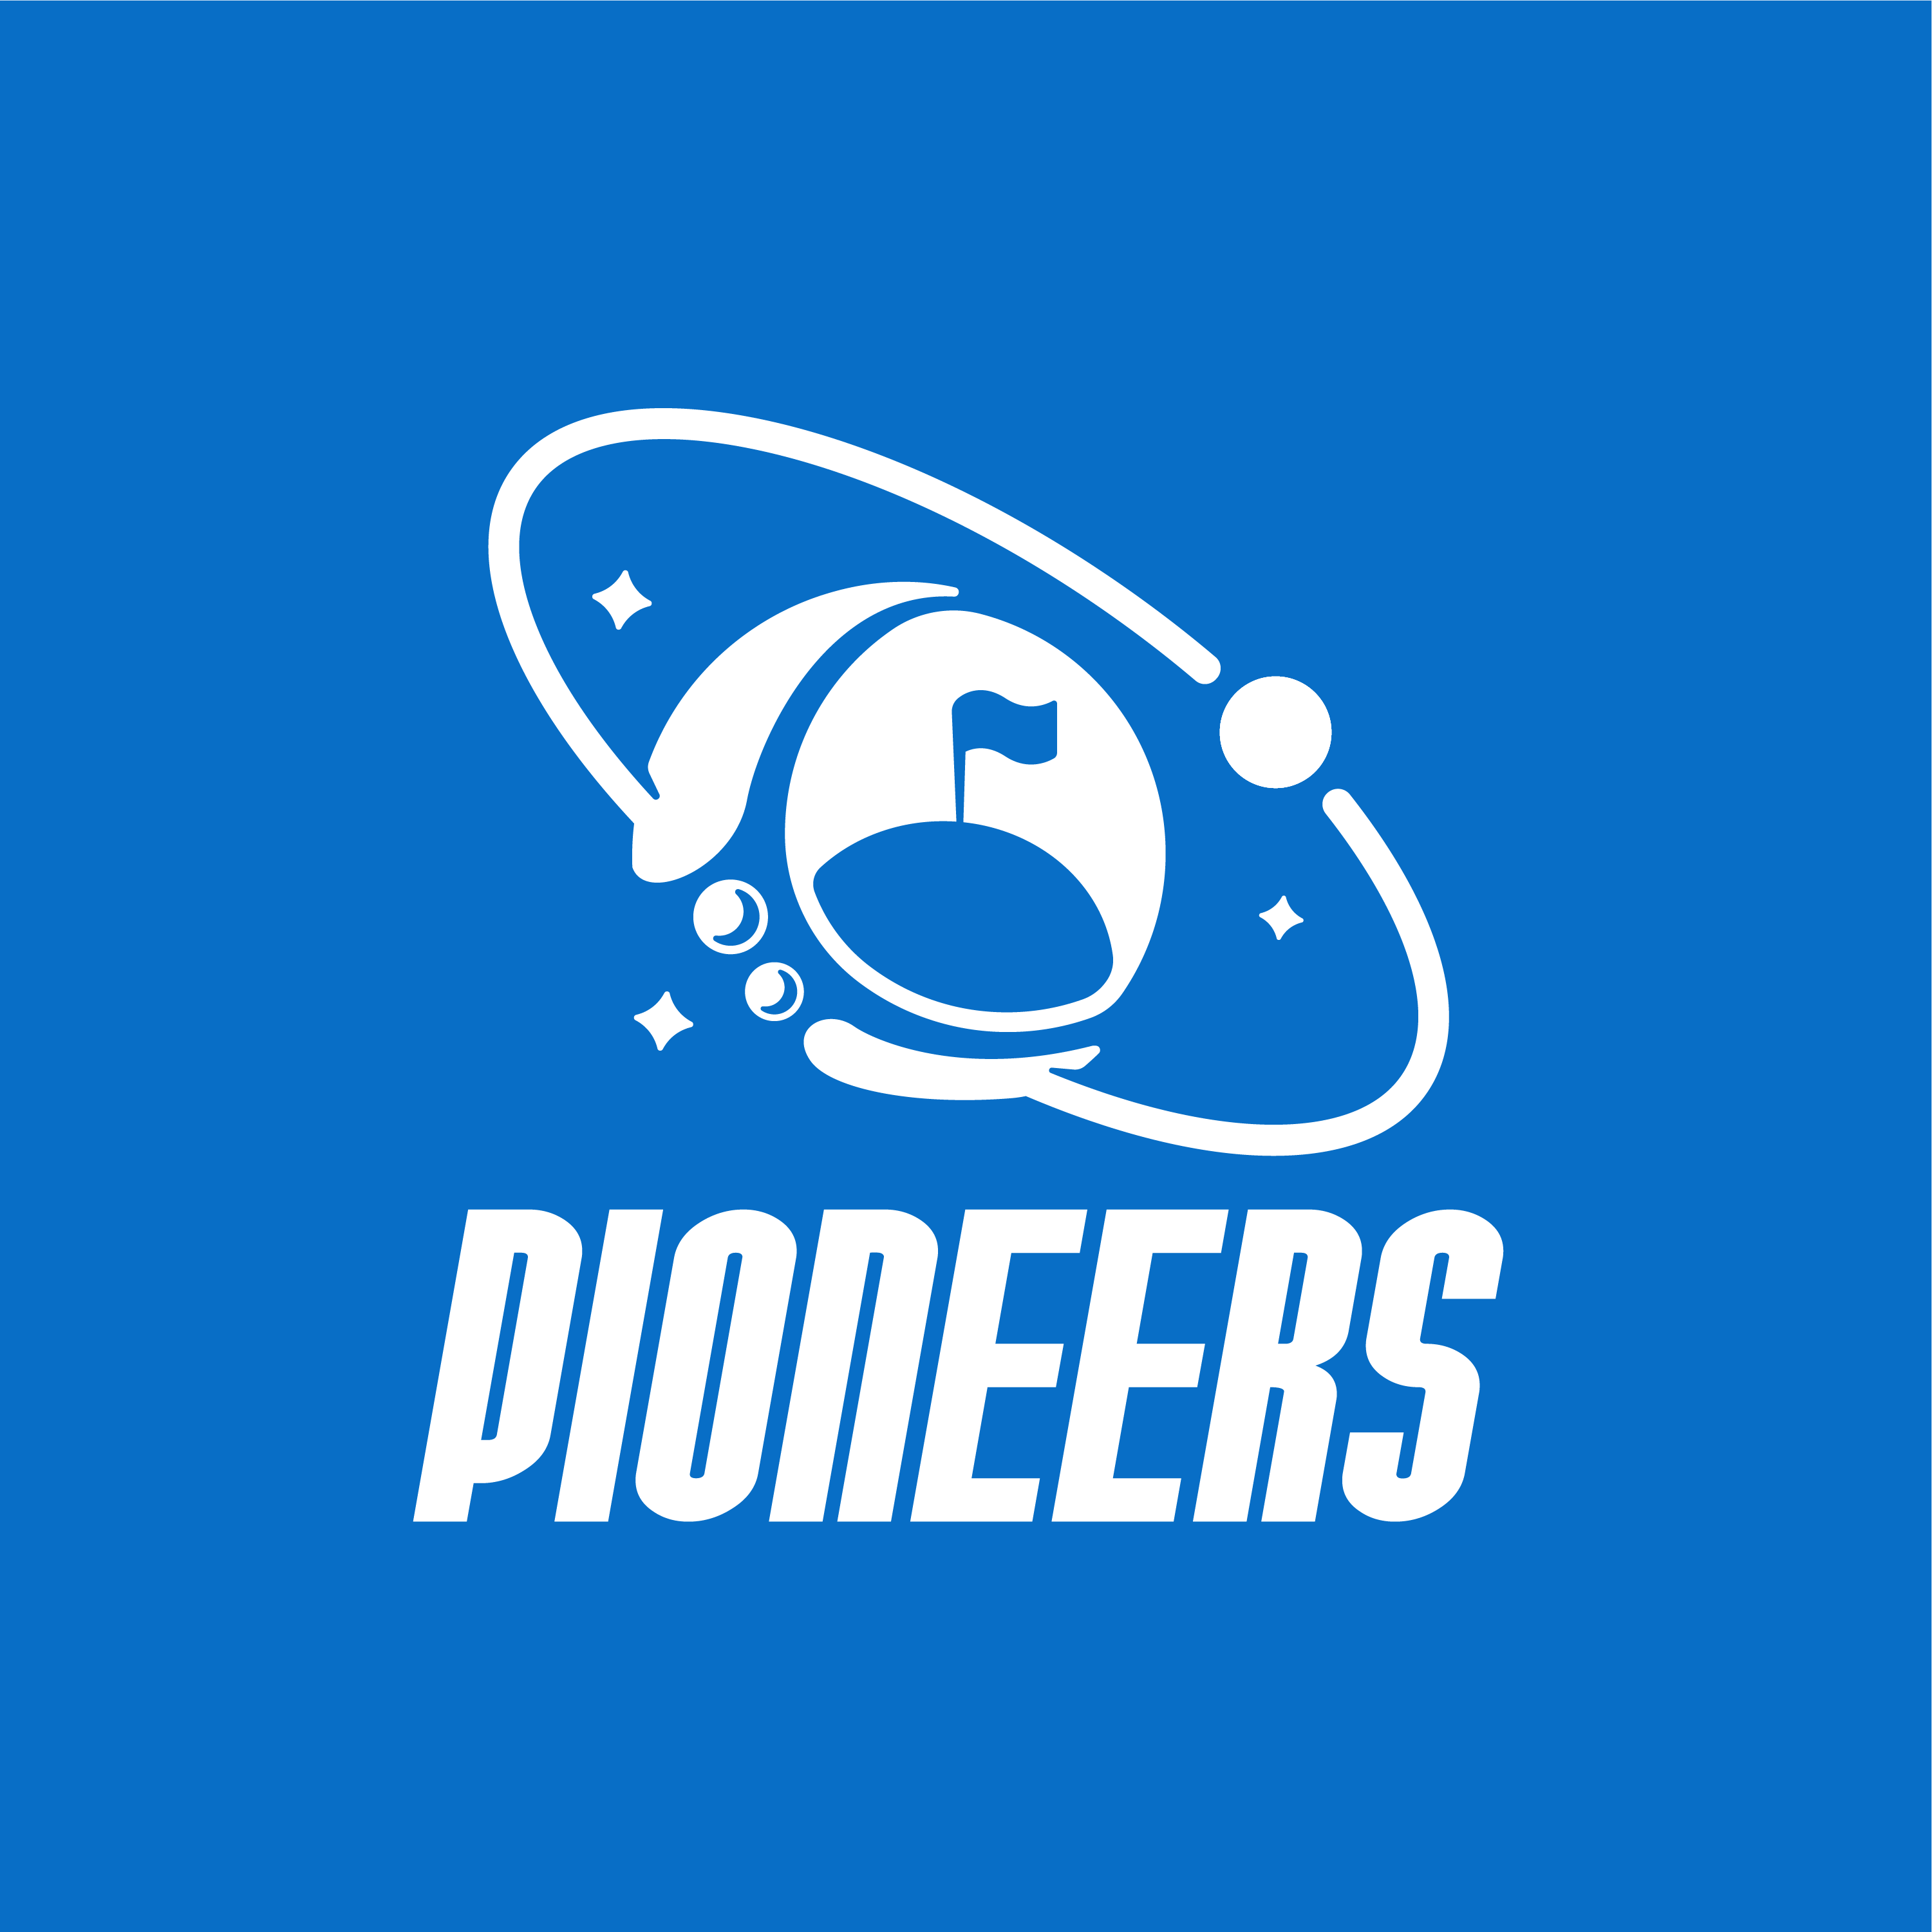 Pioneers logo design by logo designer TM Creative, Inc. for your inspiration and for the worlds largest logo competition